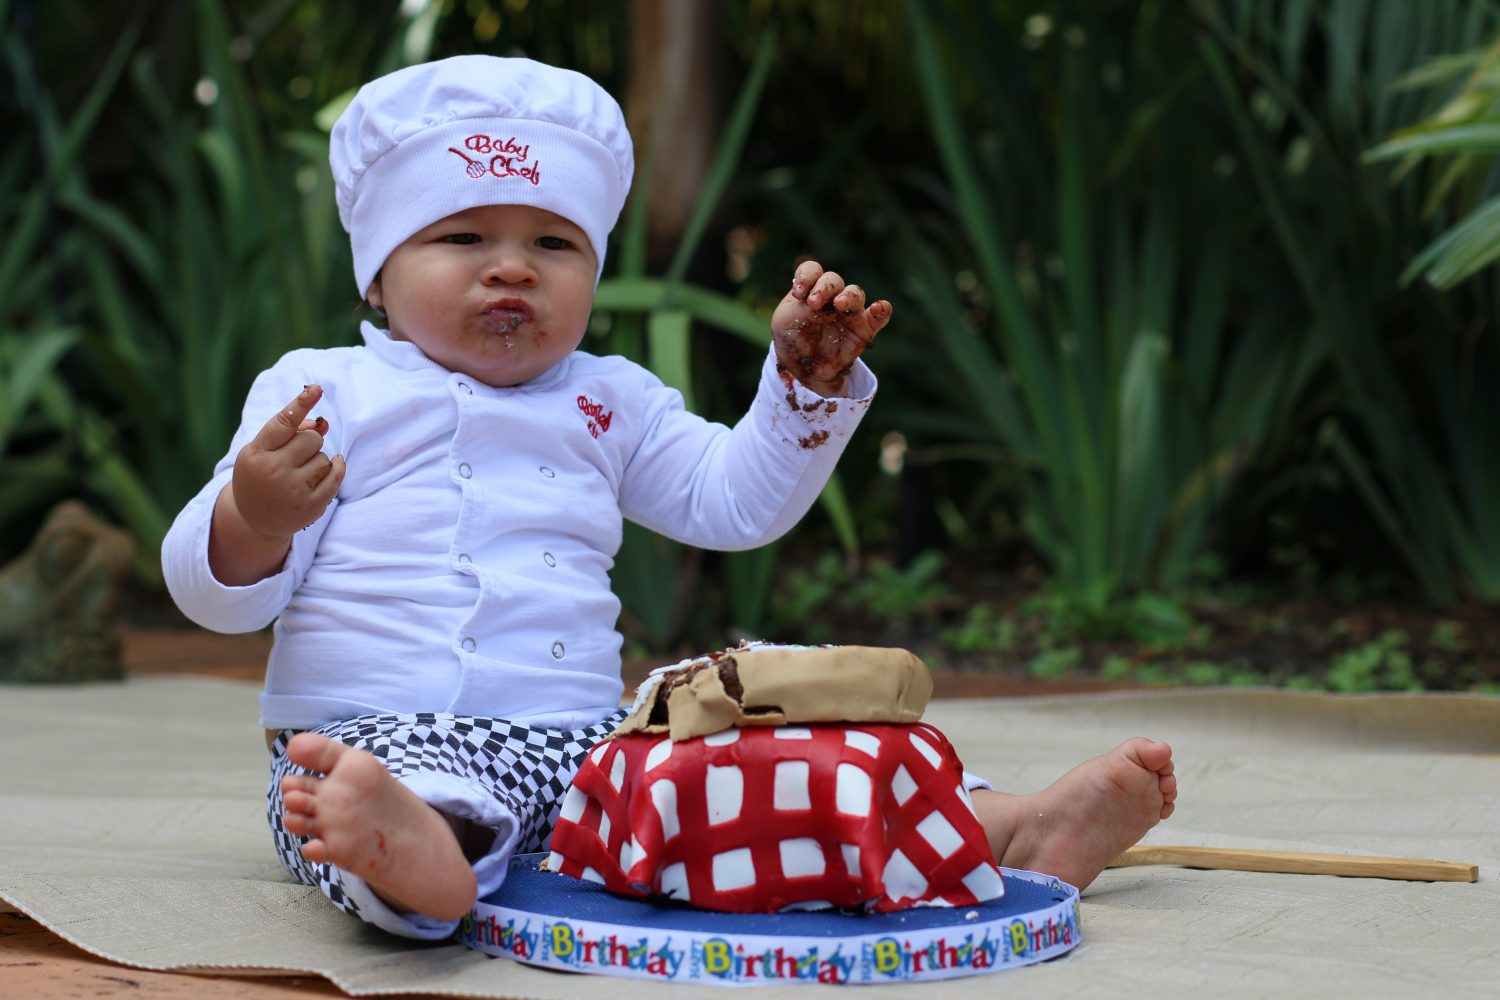 My Baby Turned One and he Transformed into an Italian Little Pizza Chef